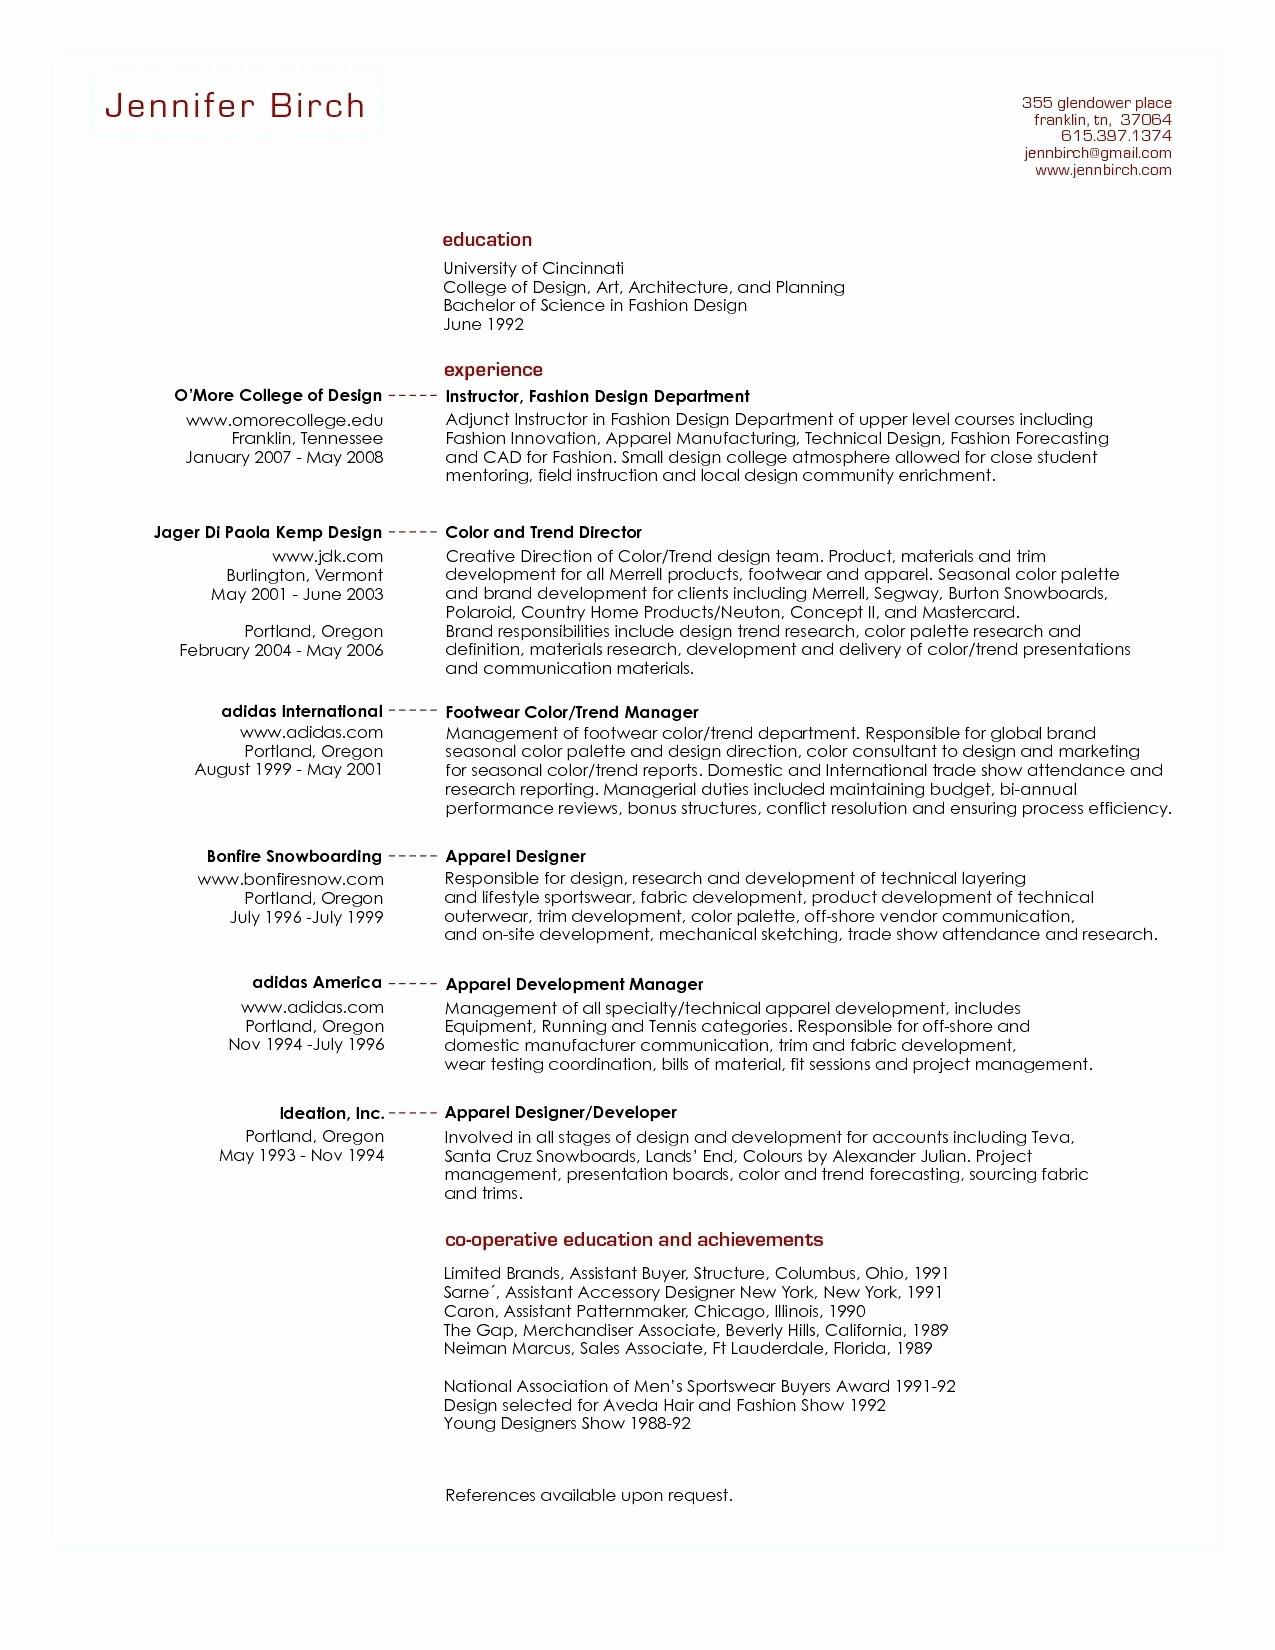 Chronological Resume Template 2018 - Resume format for Bba Graduates Luxury Law Student Resume Template